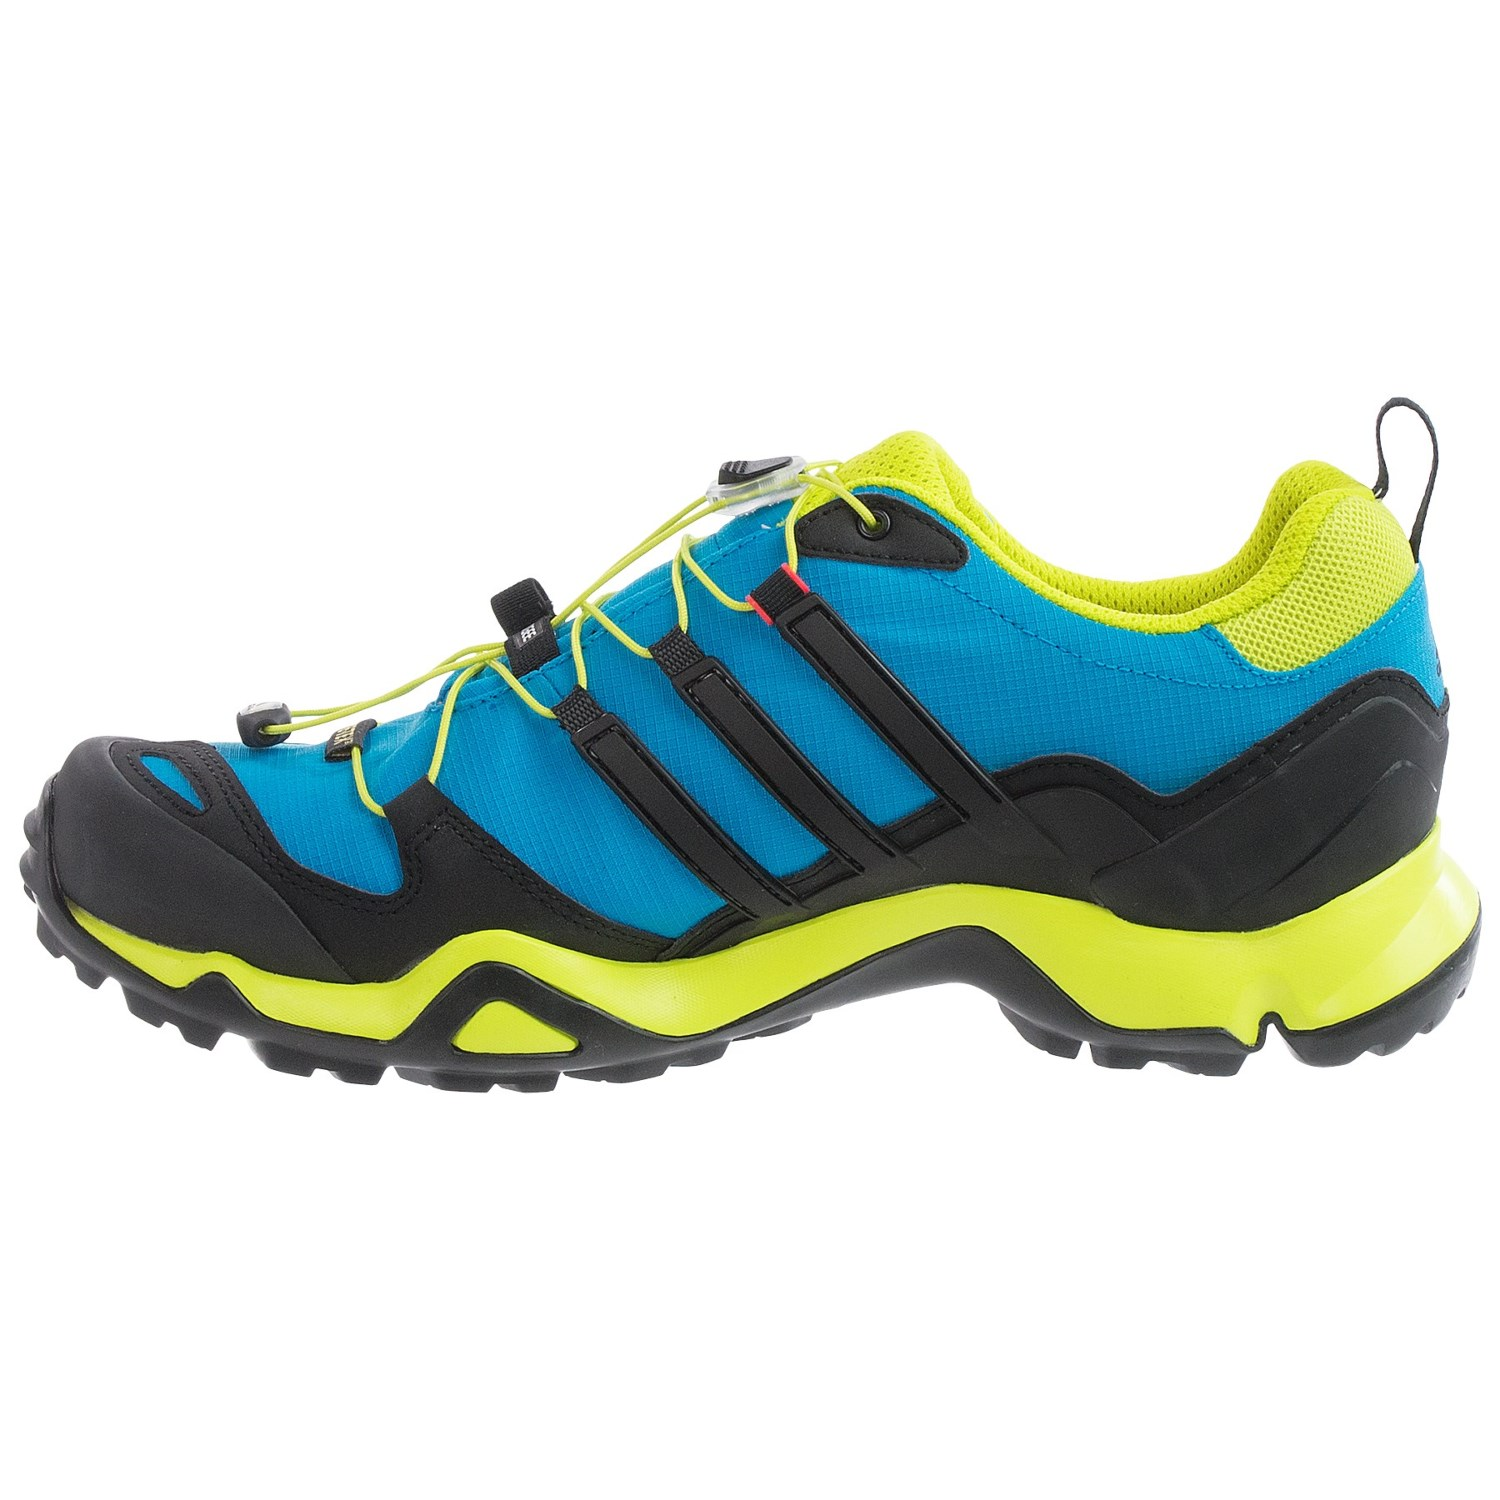 Trail Running Shoes Target